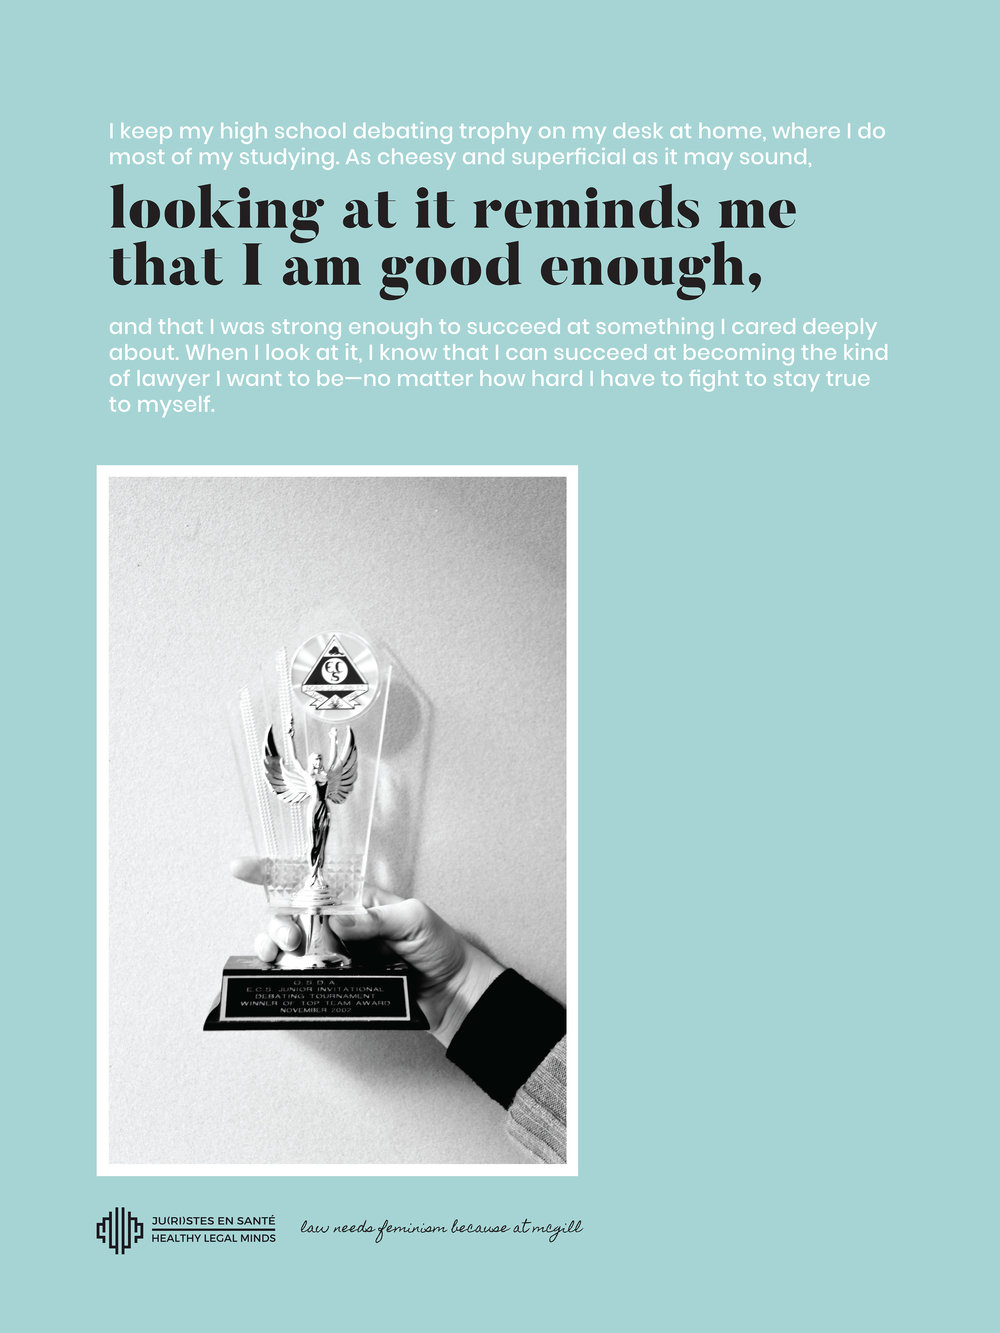 HLM Photo Campaign - Trophy.jpg